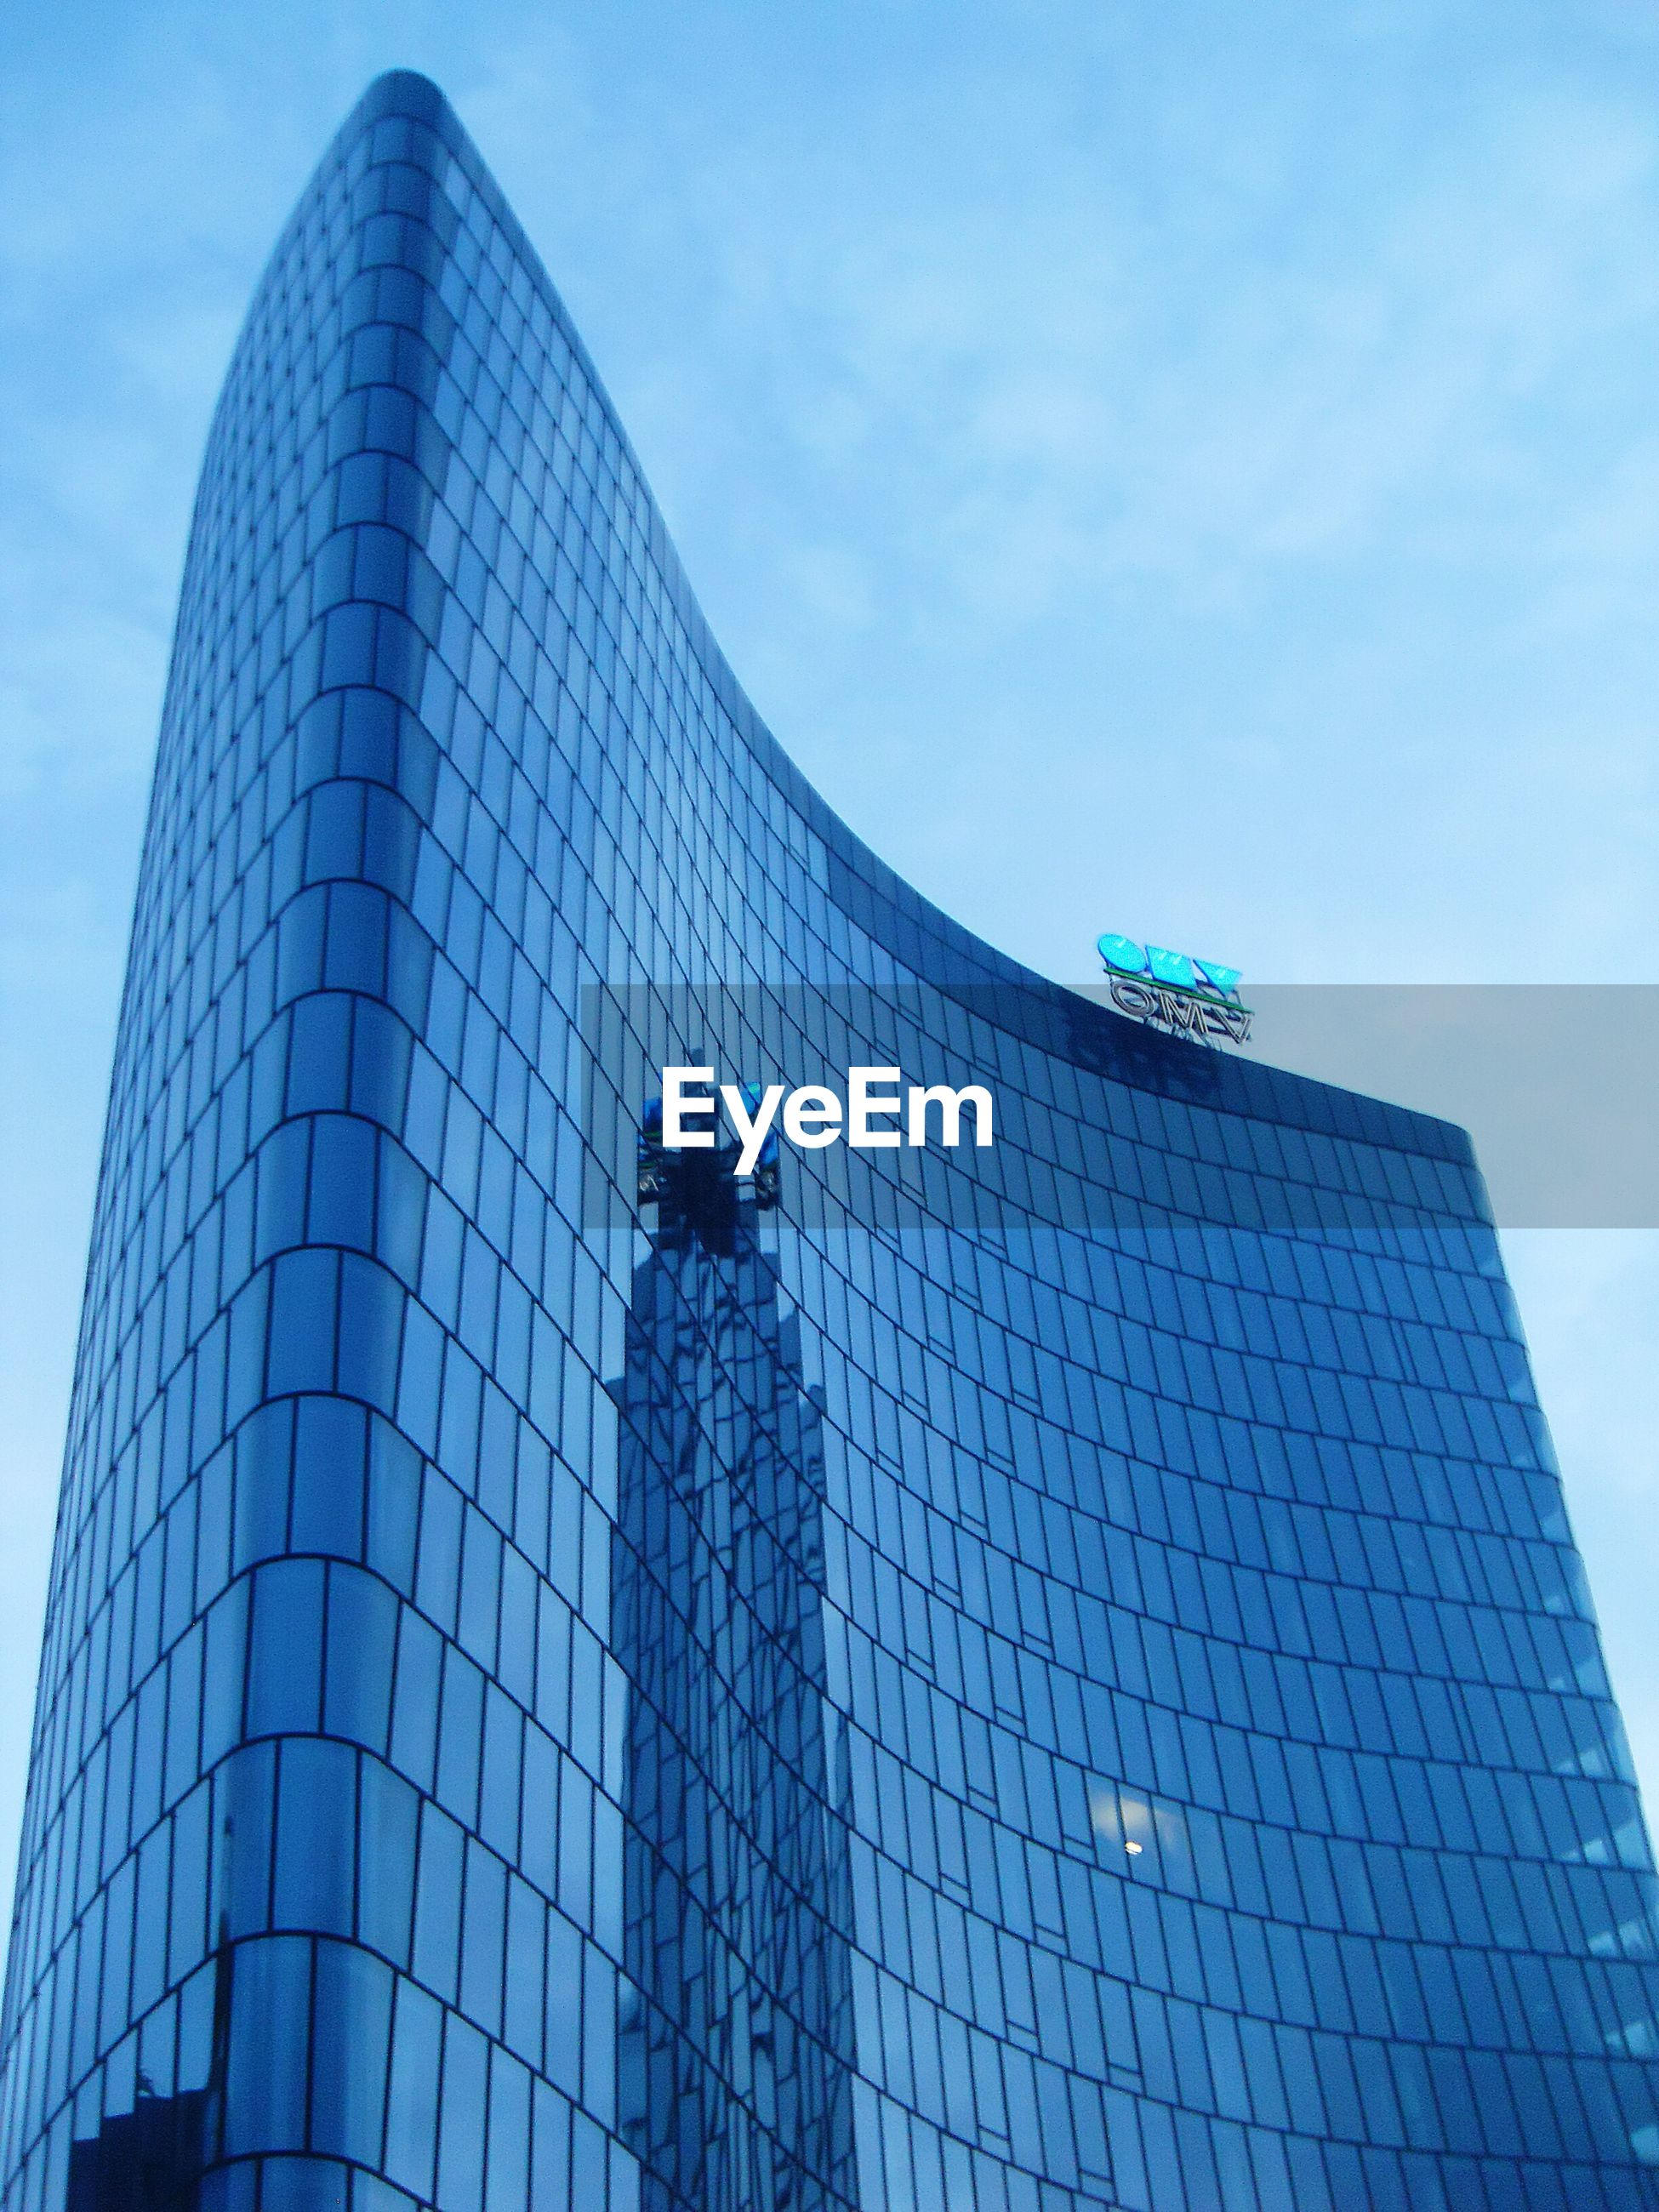 building exterior, low angle view, architecture, built structure, modern, skyscraper, office building, tall - high, city, tower, sky, blue, glass - material, building, capital cities, day, reflection, outdoors, tall, famous place